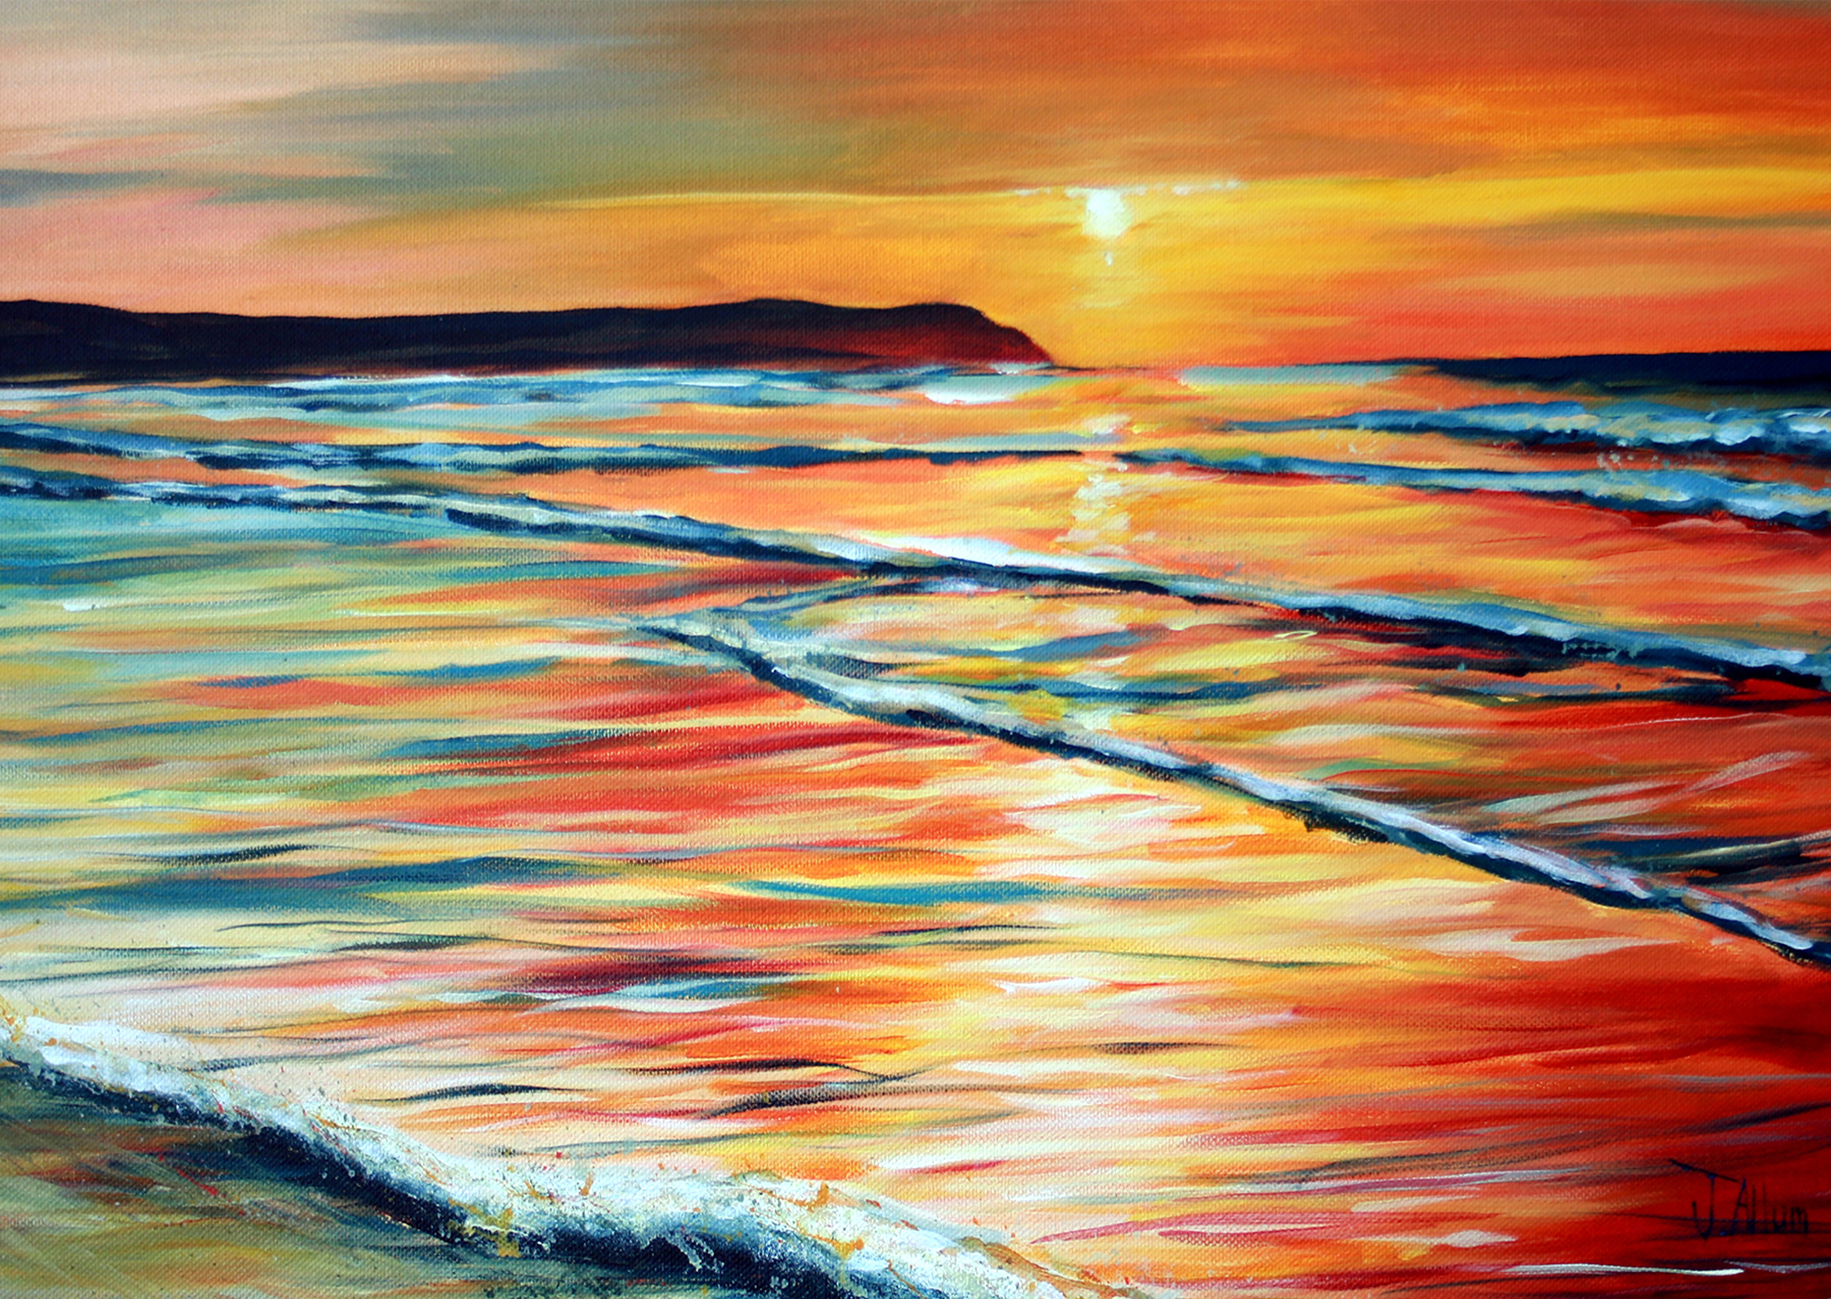 Art print. Woolacombe sunset by J Allum.